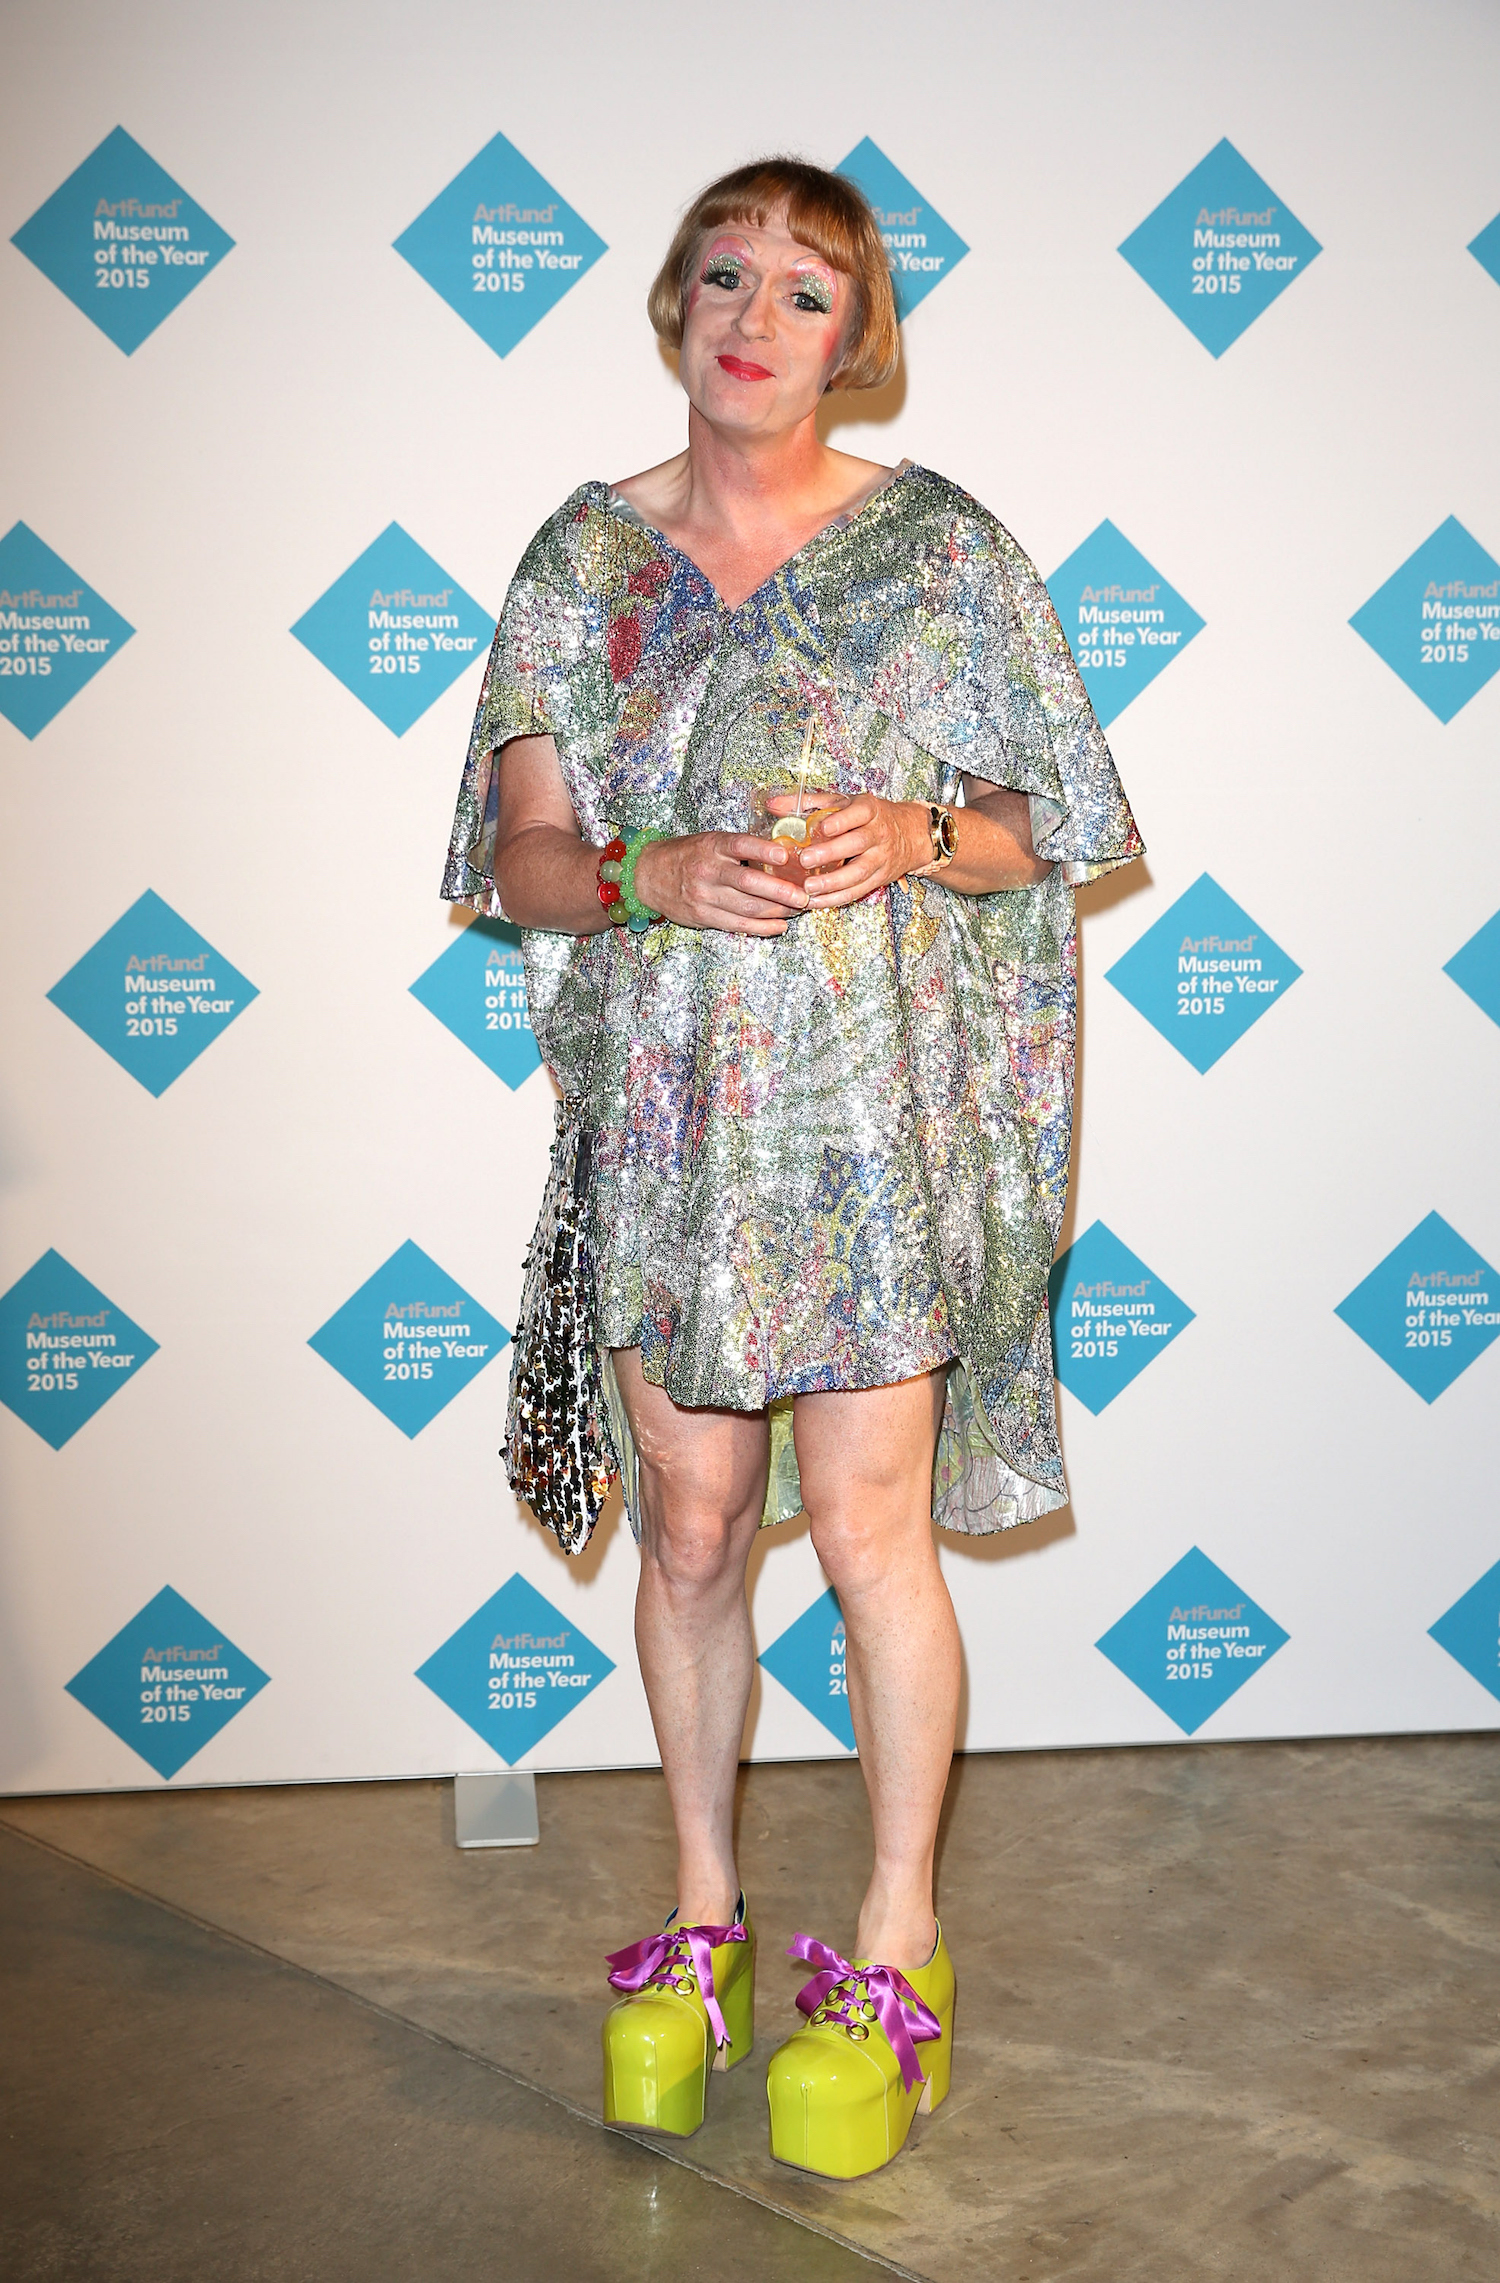 LONDON, ENGLAND - JULY 01:  Grayson Perry attends the announcement of the winner of the UK's largest arts prize - the £100,000 Art Fund Prize for Museum of the Year, presented by Ben Okri at Tate Modern on July 1, 2015 in London, England.  (Photo by Tim P. Whitby/Getty Images for The Art Fund)